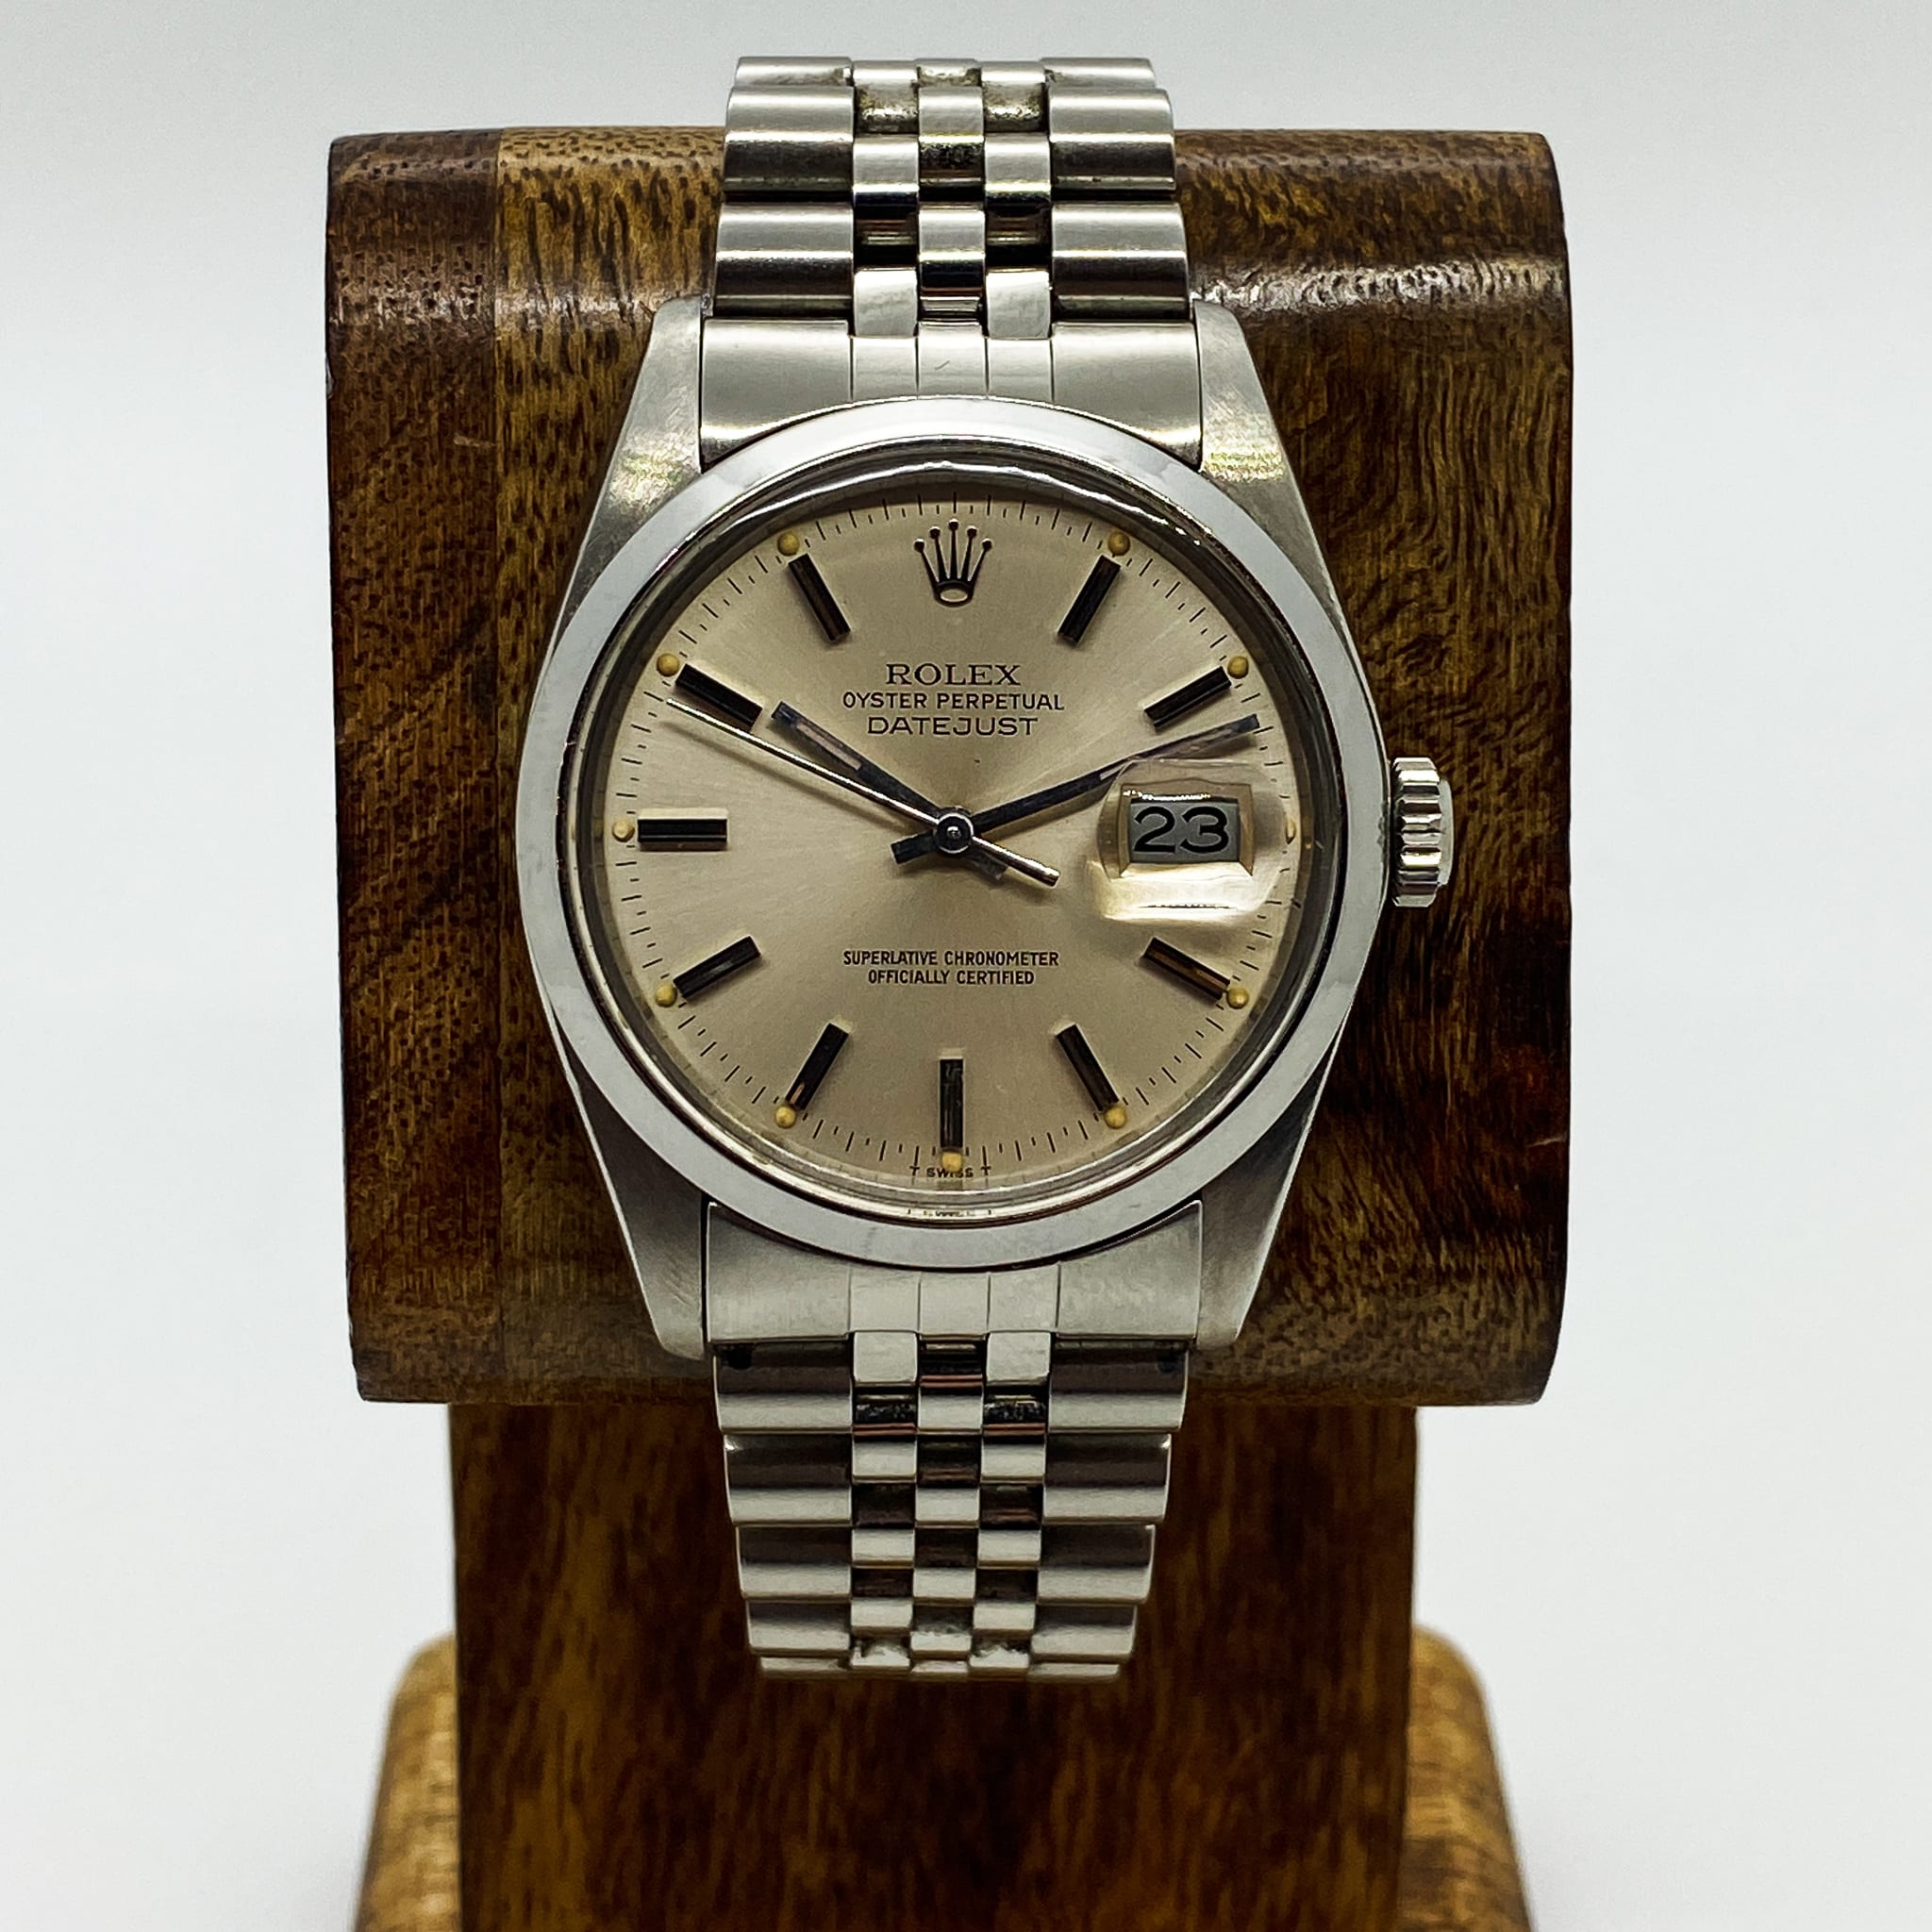 ROLEX DATEJUST 1978 16000 SILVER DIAL